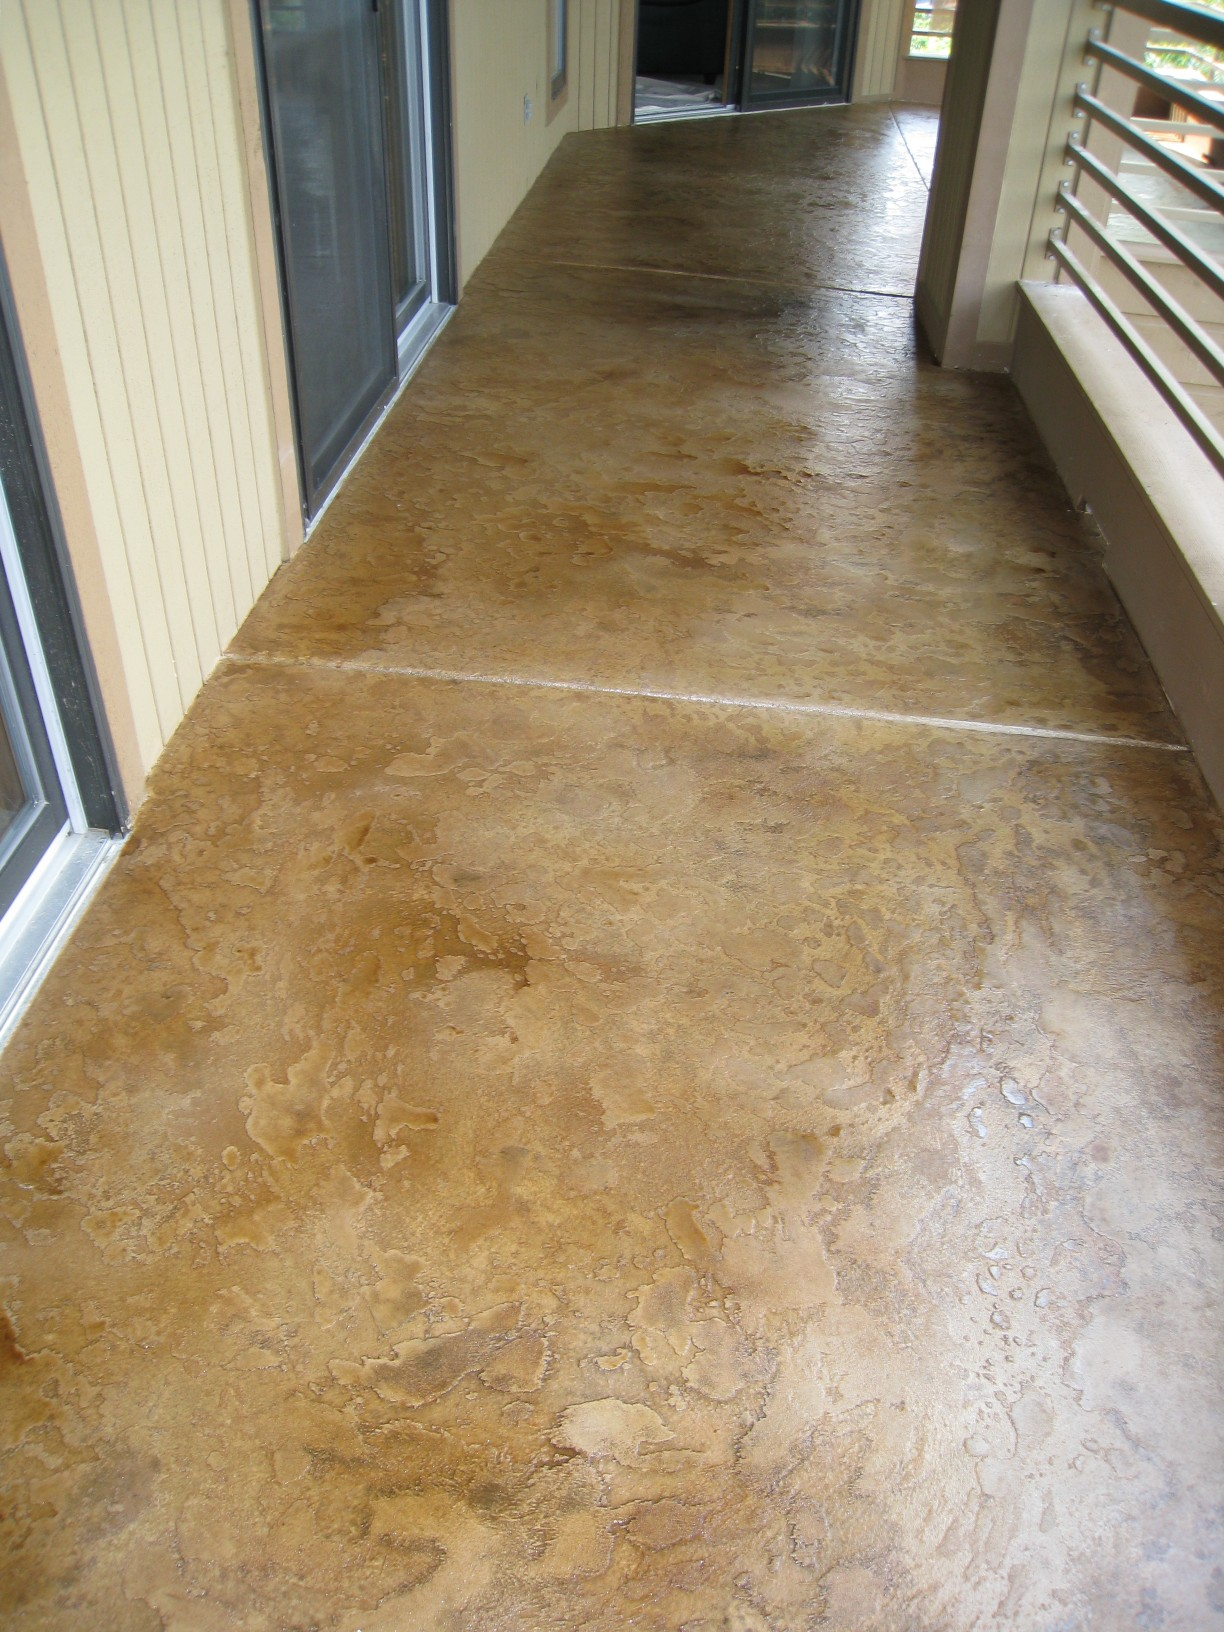 Concrete Overlay Flooring : Recent work